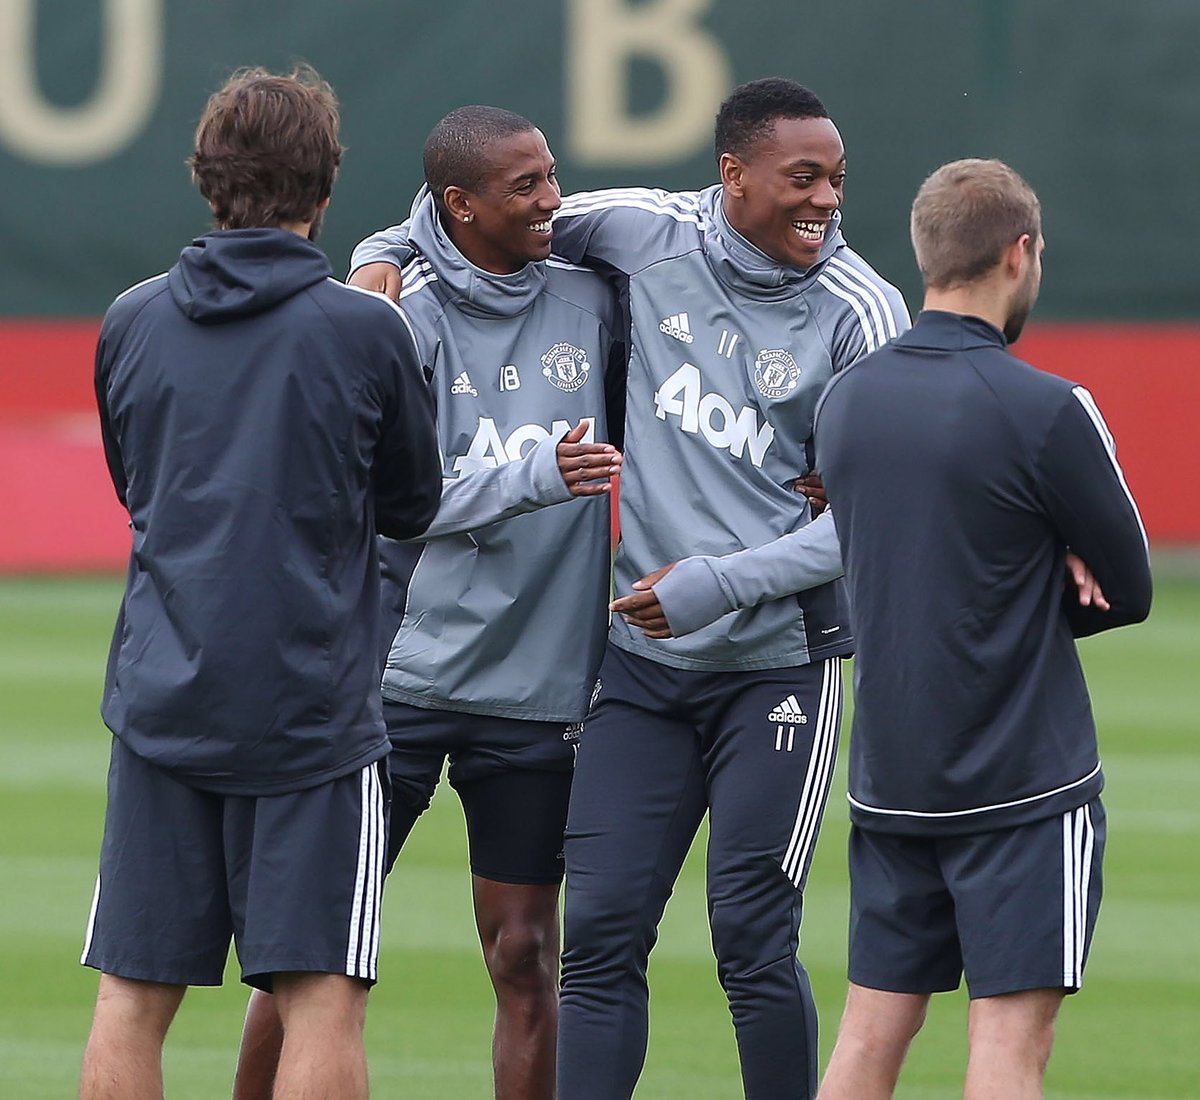 Stay Smiling and Laughing #Training <br>http://pic.twitter.com/Lw9cfGLbtW